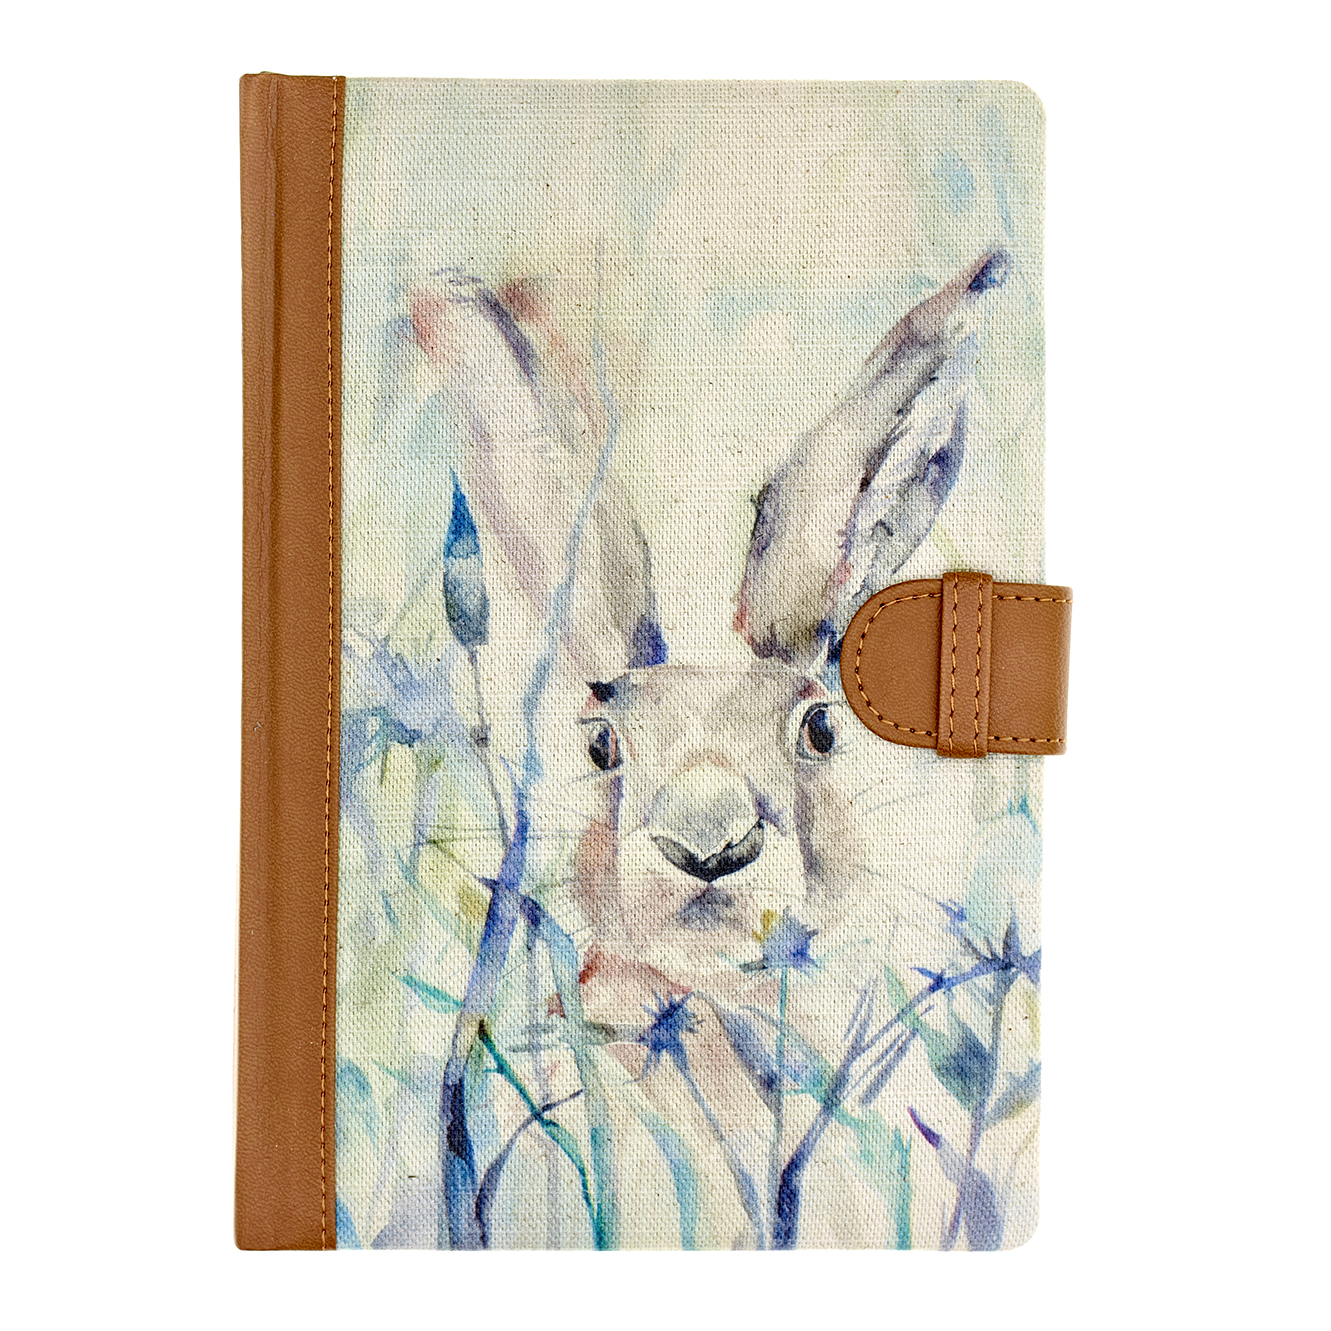 Jack Rabbit Notebooks 34 x 24 cm